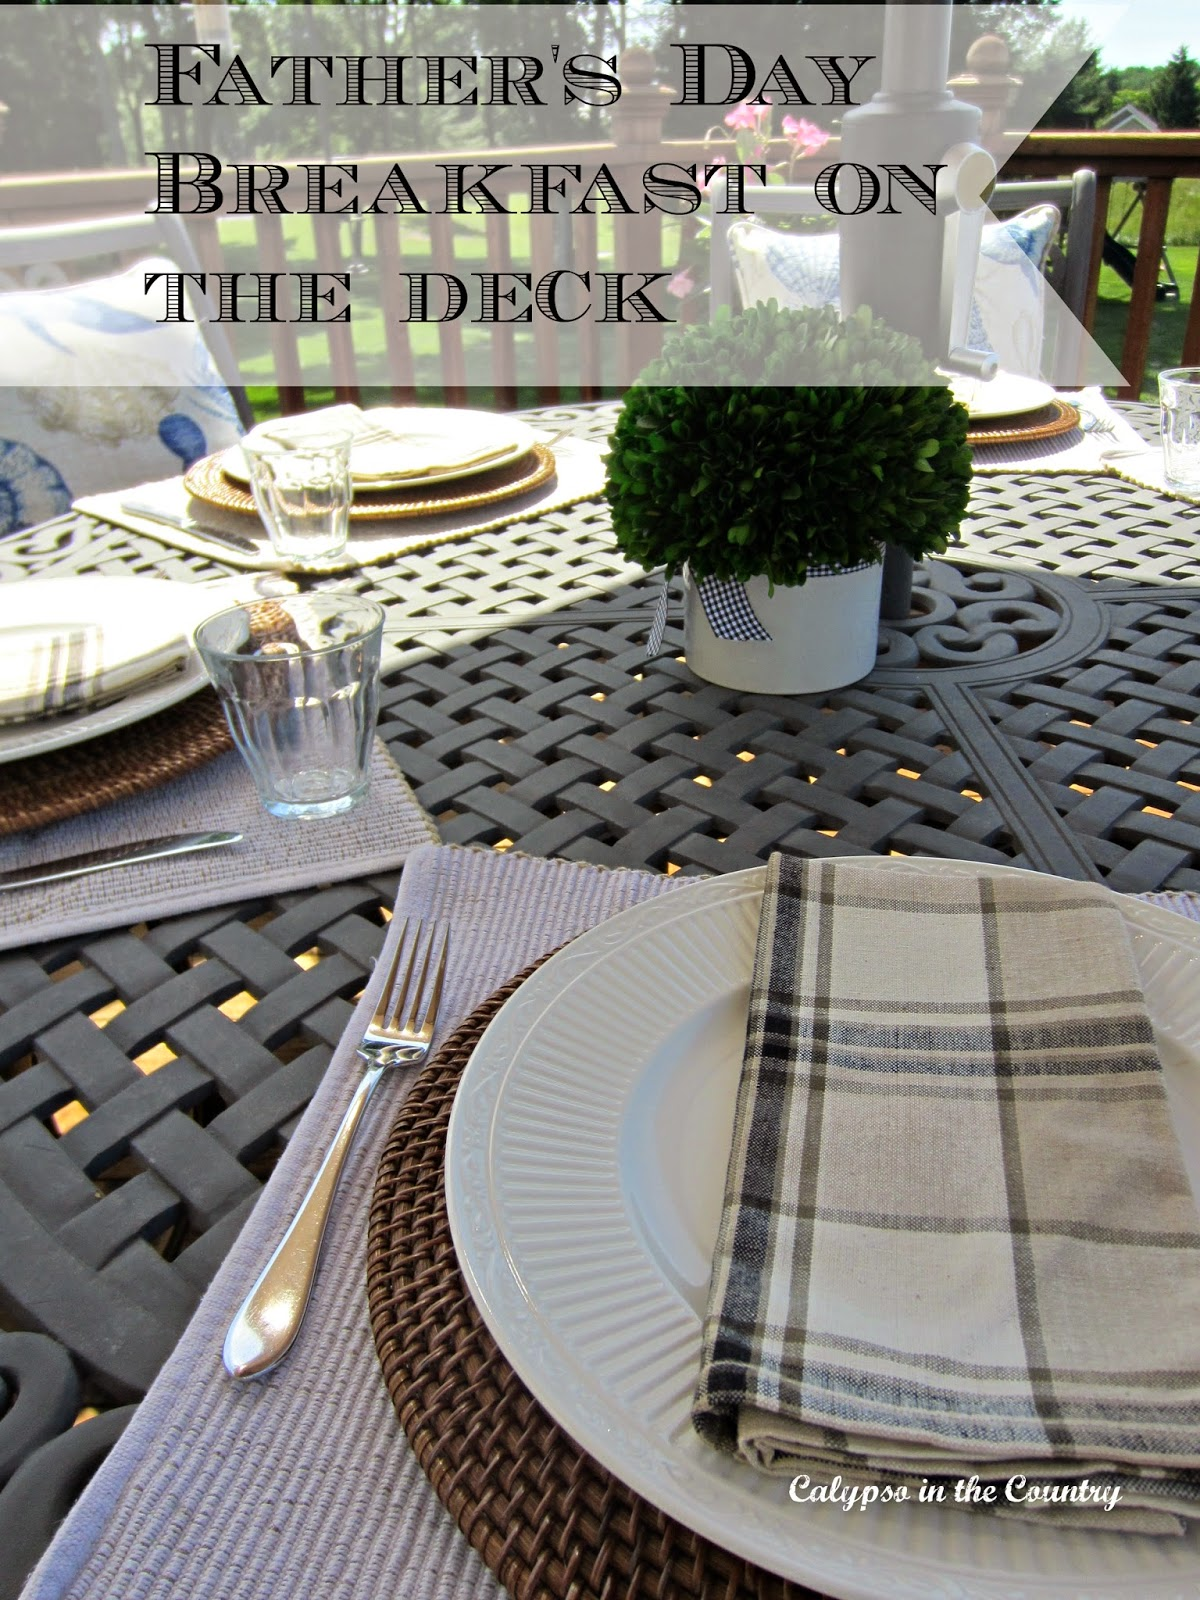 Father's Day Table Setting on the Deck - Breakfast for Dad!